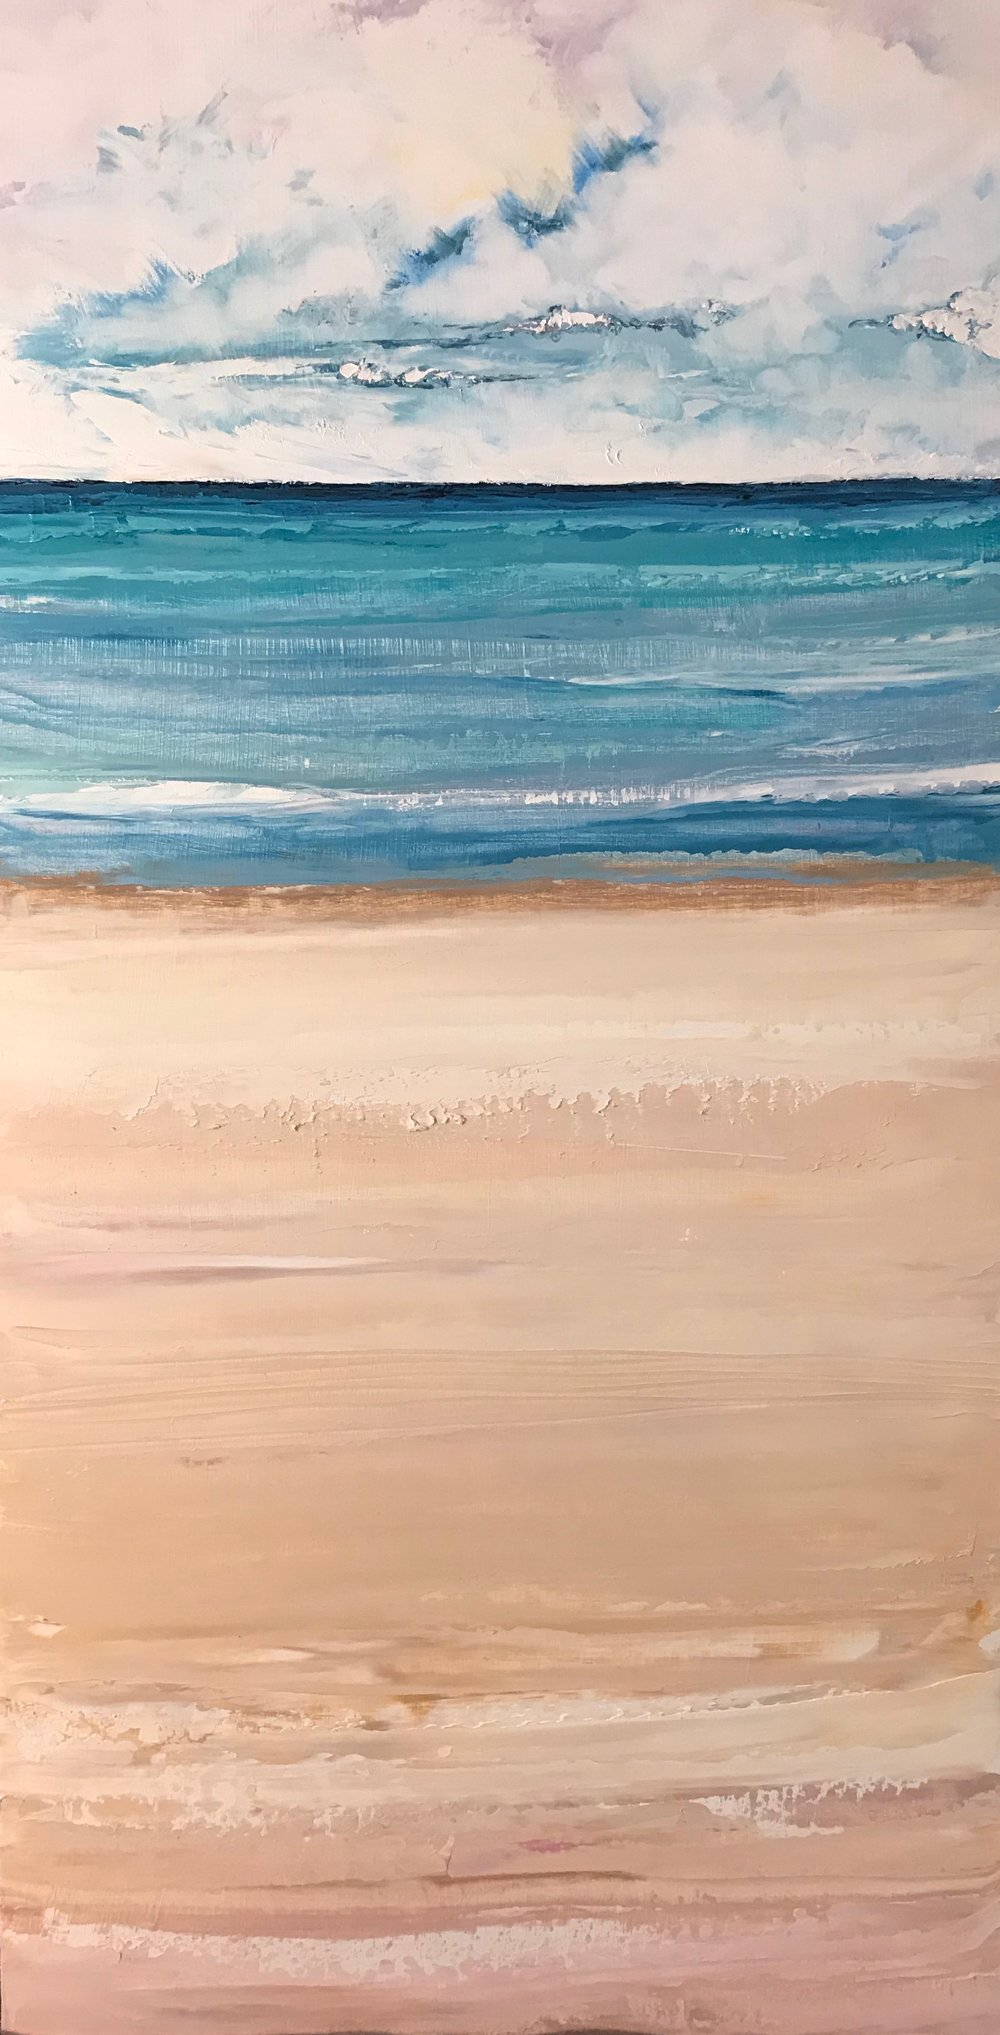 """Waiting on Waves""  24x12 Oil on Wood"